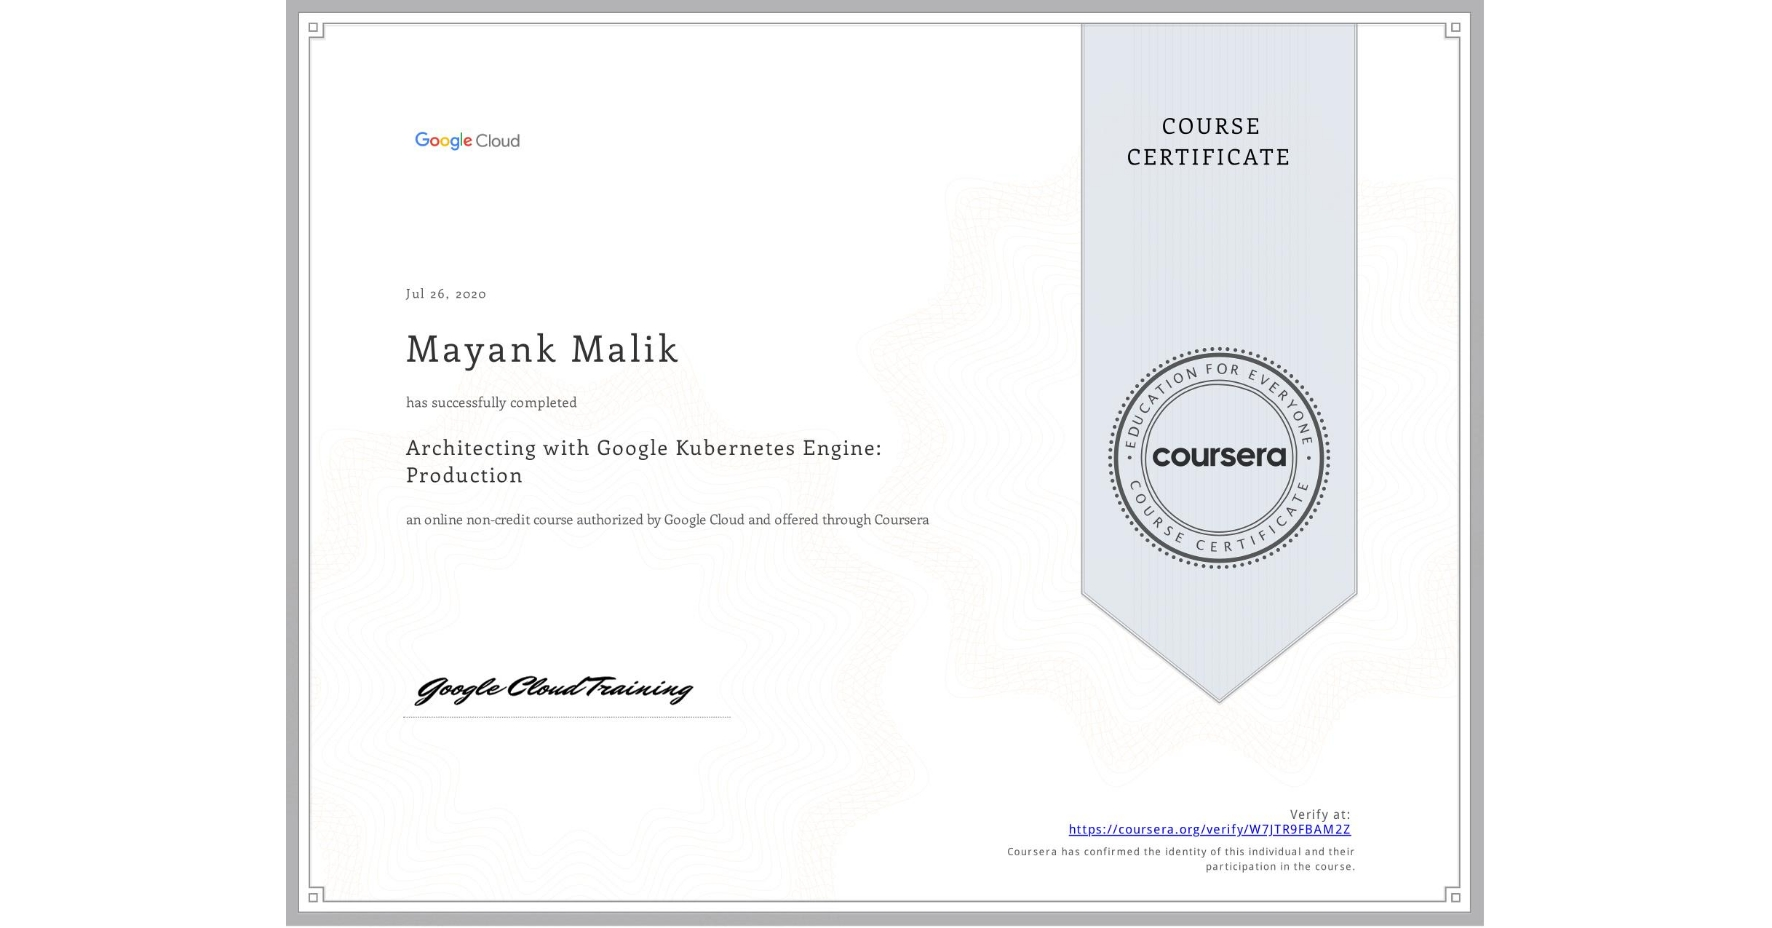 View certificate for Mayank Malik, Architecting with Google Kubernetes Engine: Production, an online non-credit course authorized by Google Cloud and offered through Coursera